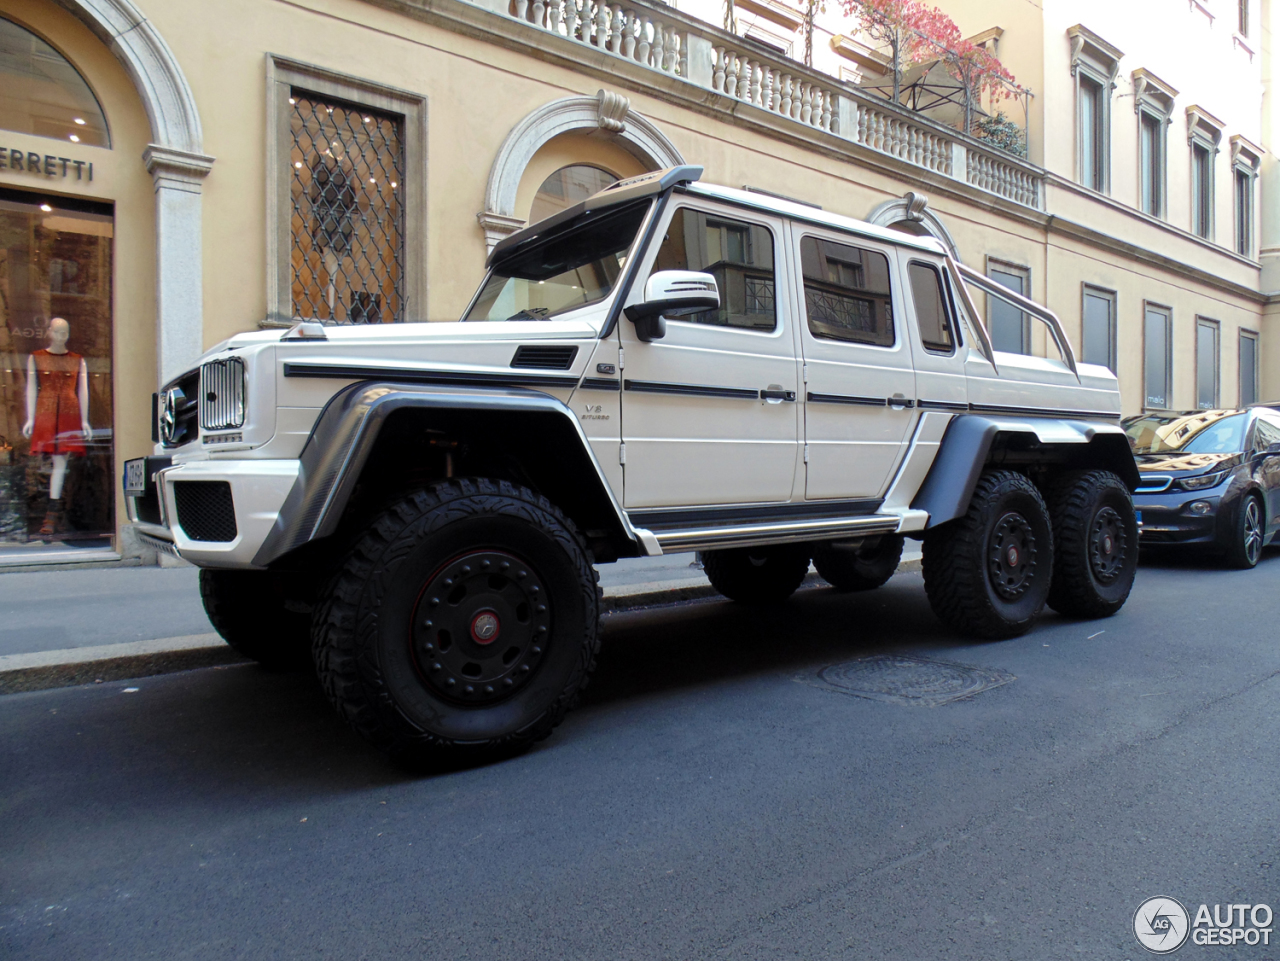 Mercedes benz g 63 amg 6x6 18 october 2014 autogespot for Mercedes benz amg 6x6 price